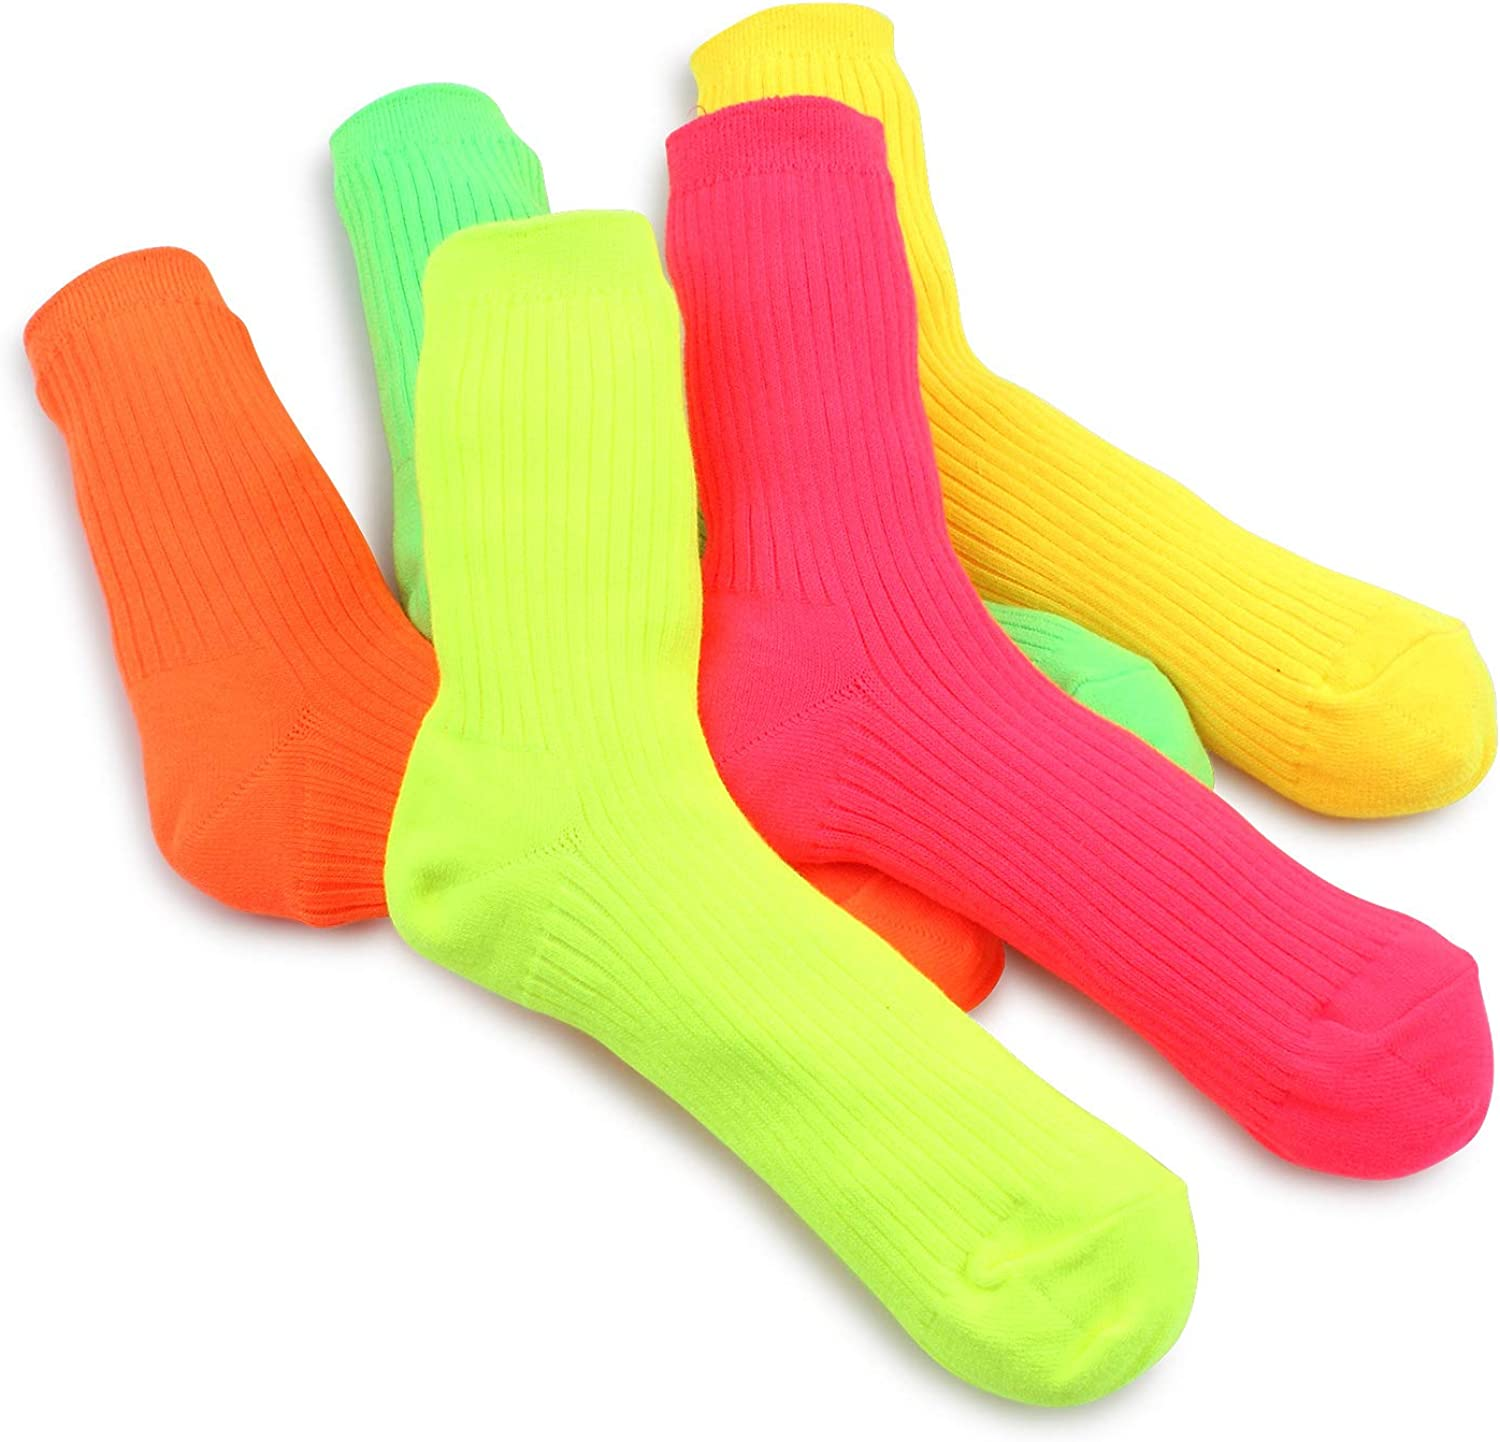 Vintage Socks | 1920s, 1930s, 1940s, 1950s, 1960s History Street style Neon cotton socks women Hip fashion $14.90 AT vintagedancer.com